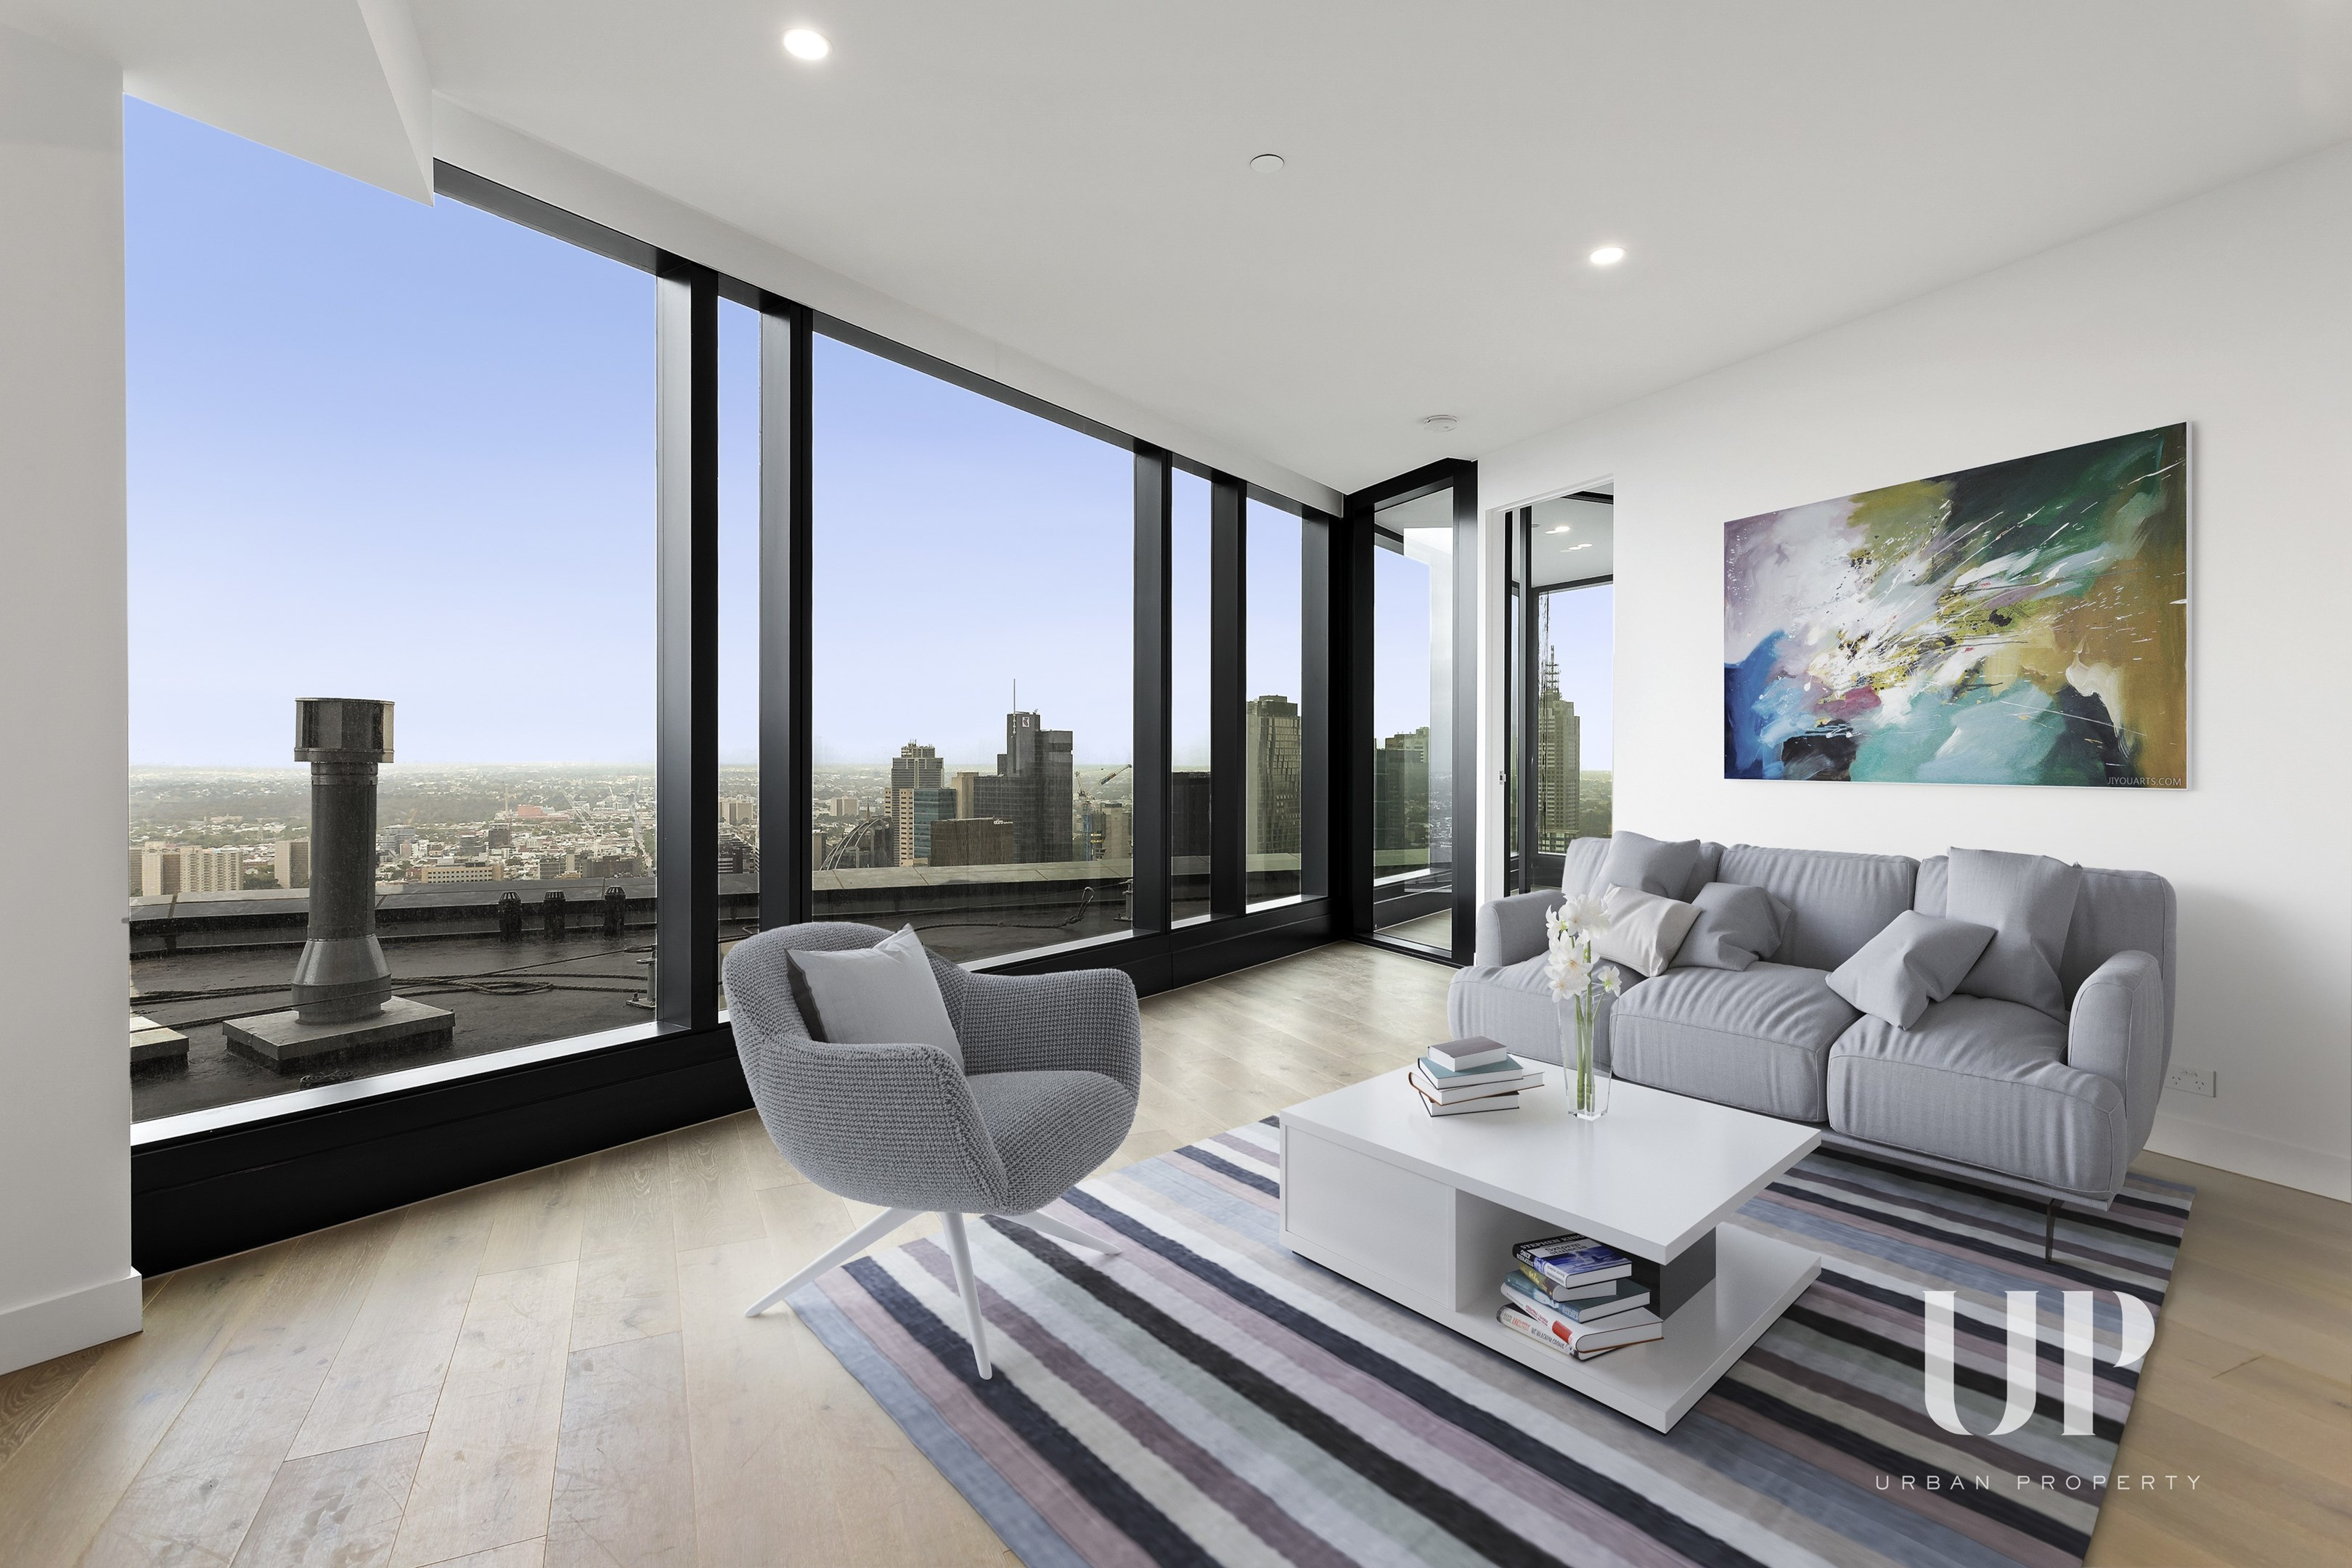 Carlton VIC 3053 - 3 beds apartment for Sale, $1,285,000 ...